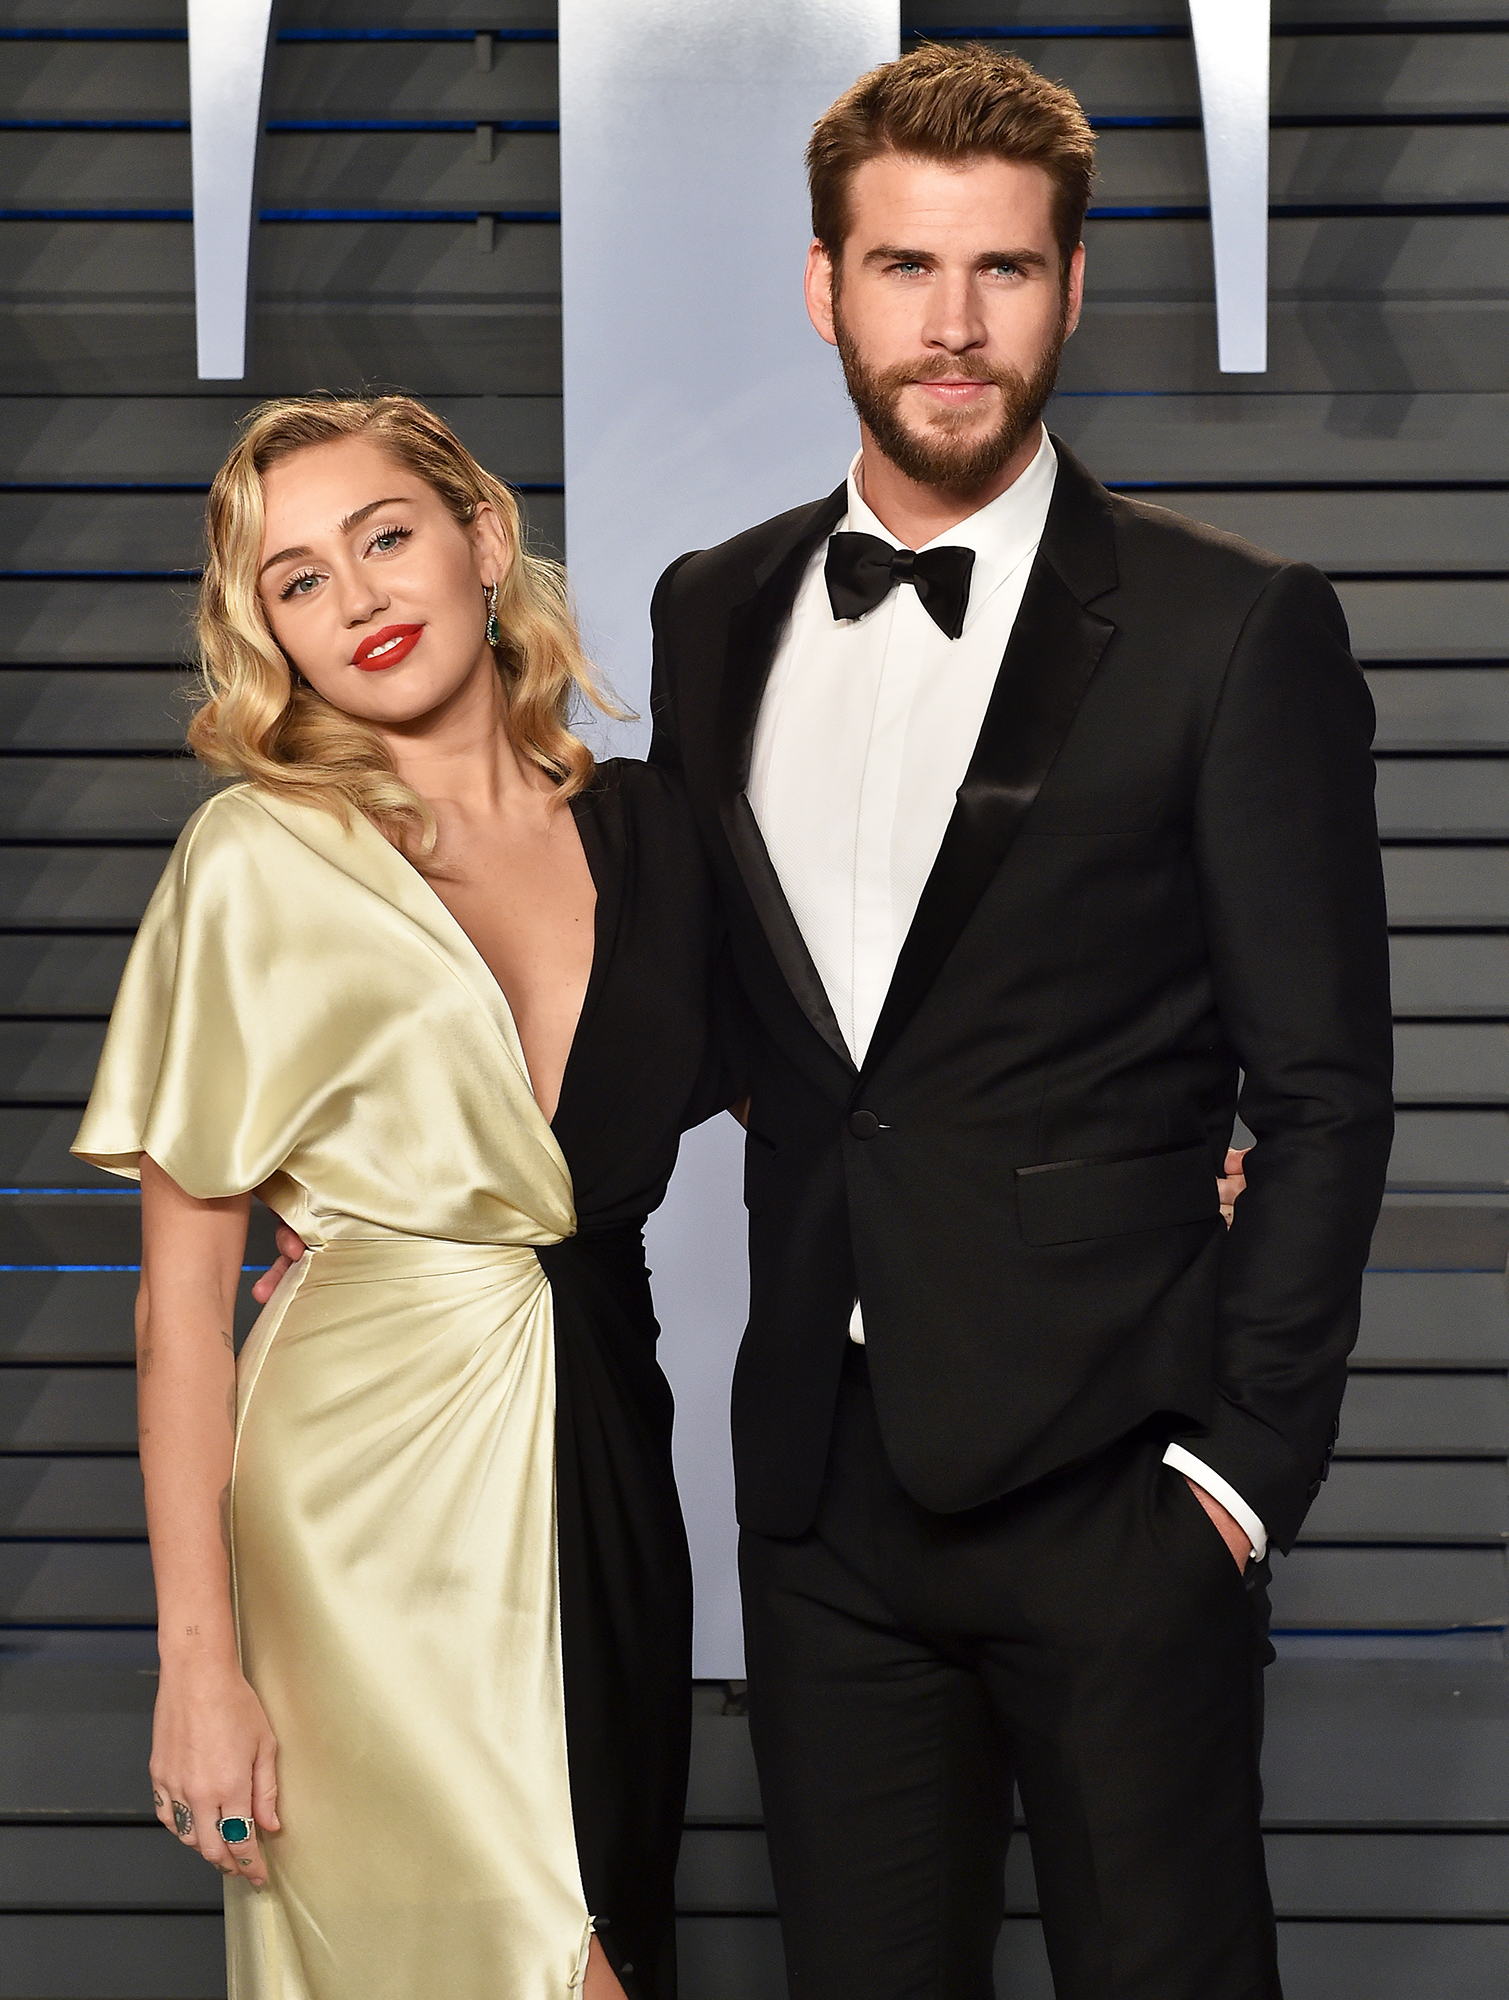 Miley Cyrus Liam Hemsworth Not Well Kidney Stones